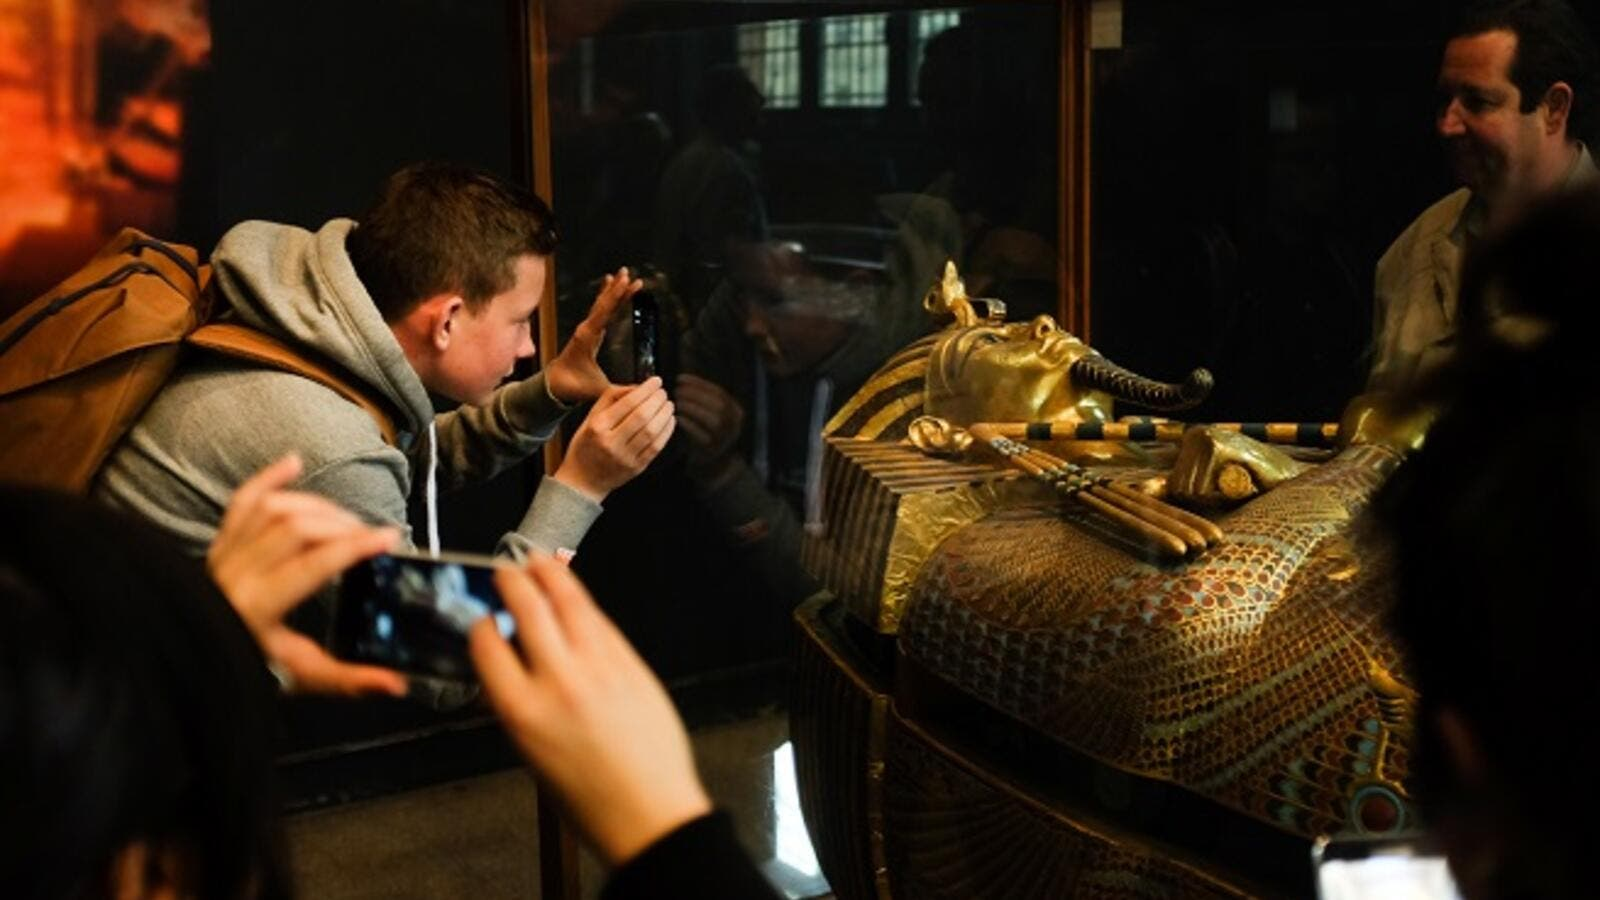 The insurance coverage of King Tut's belongings to be shown abroad was valued at $862 million, said Egypt's Minister of Antiquities Khaled El-Anany. (Shutterstock)